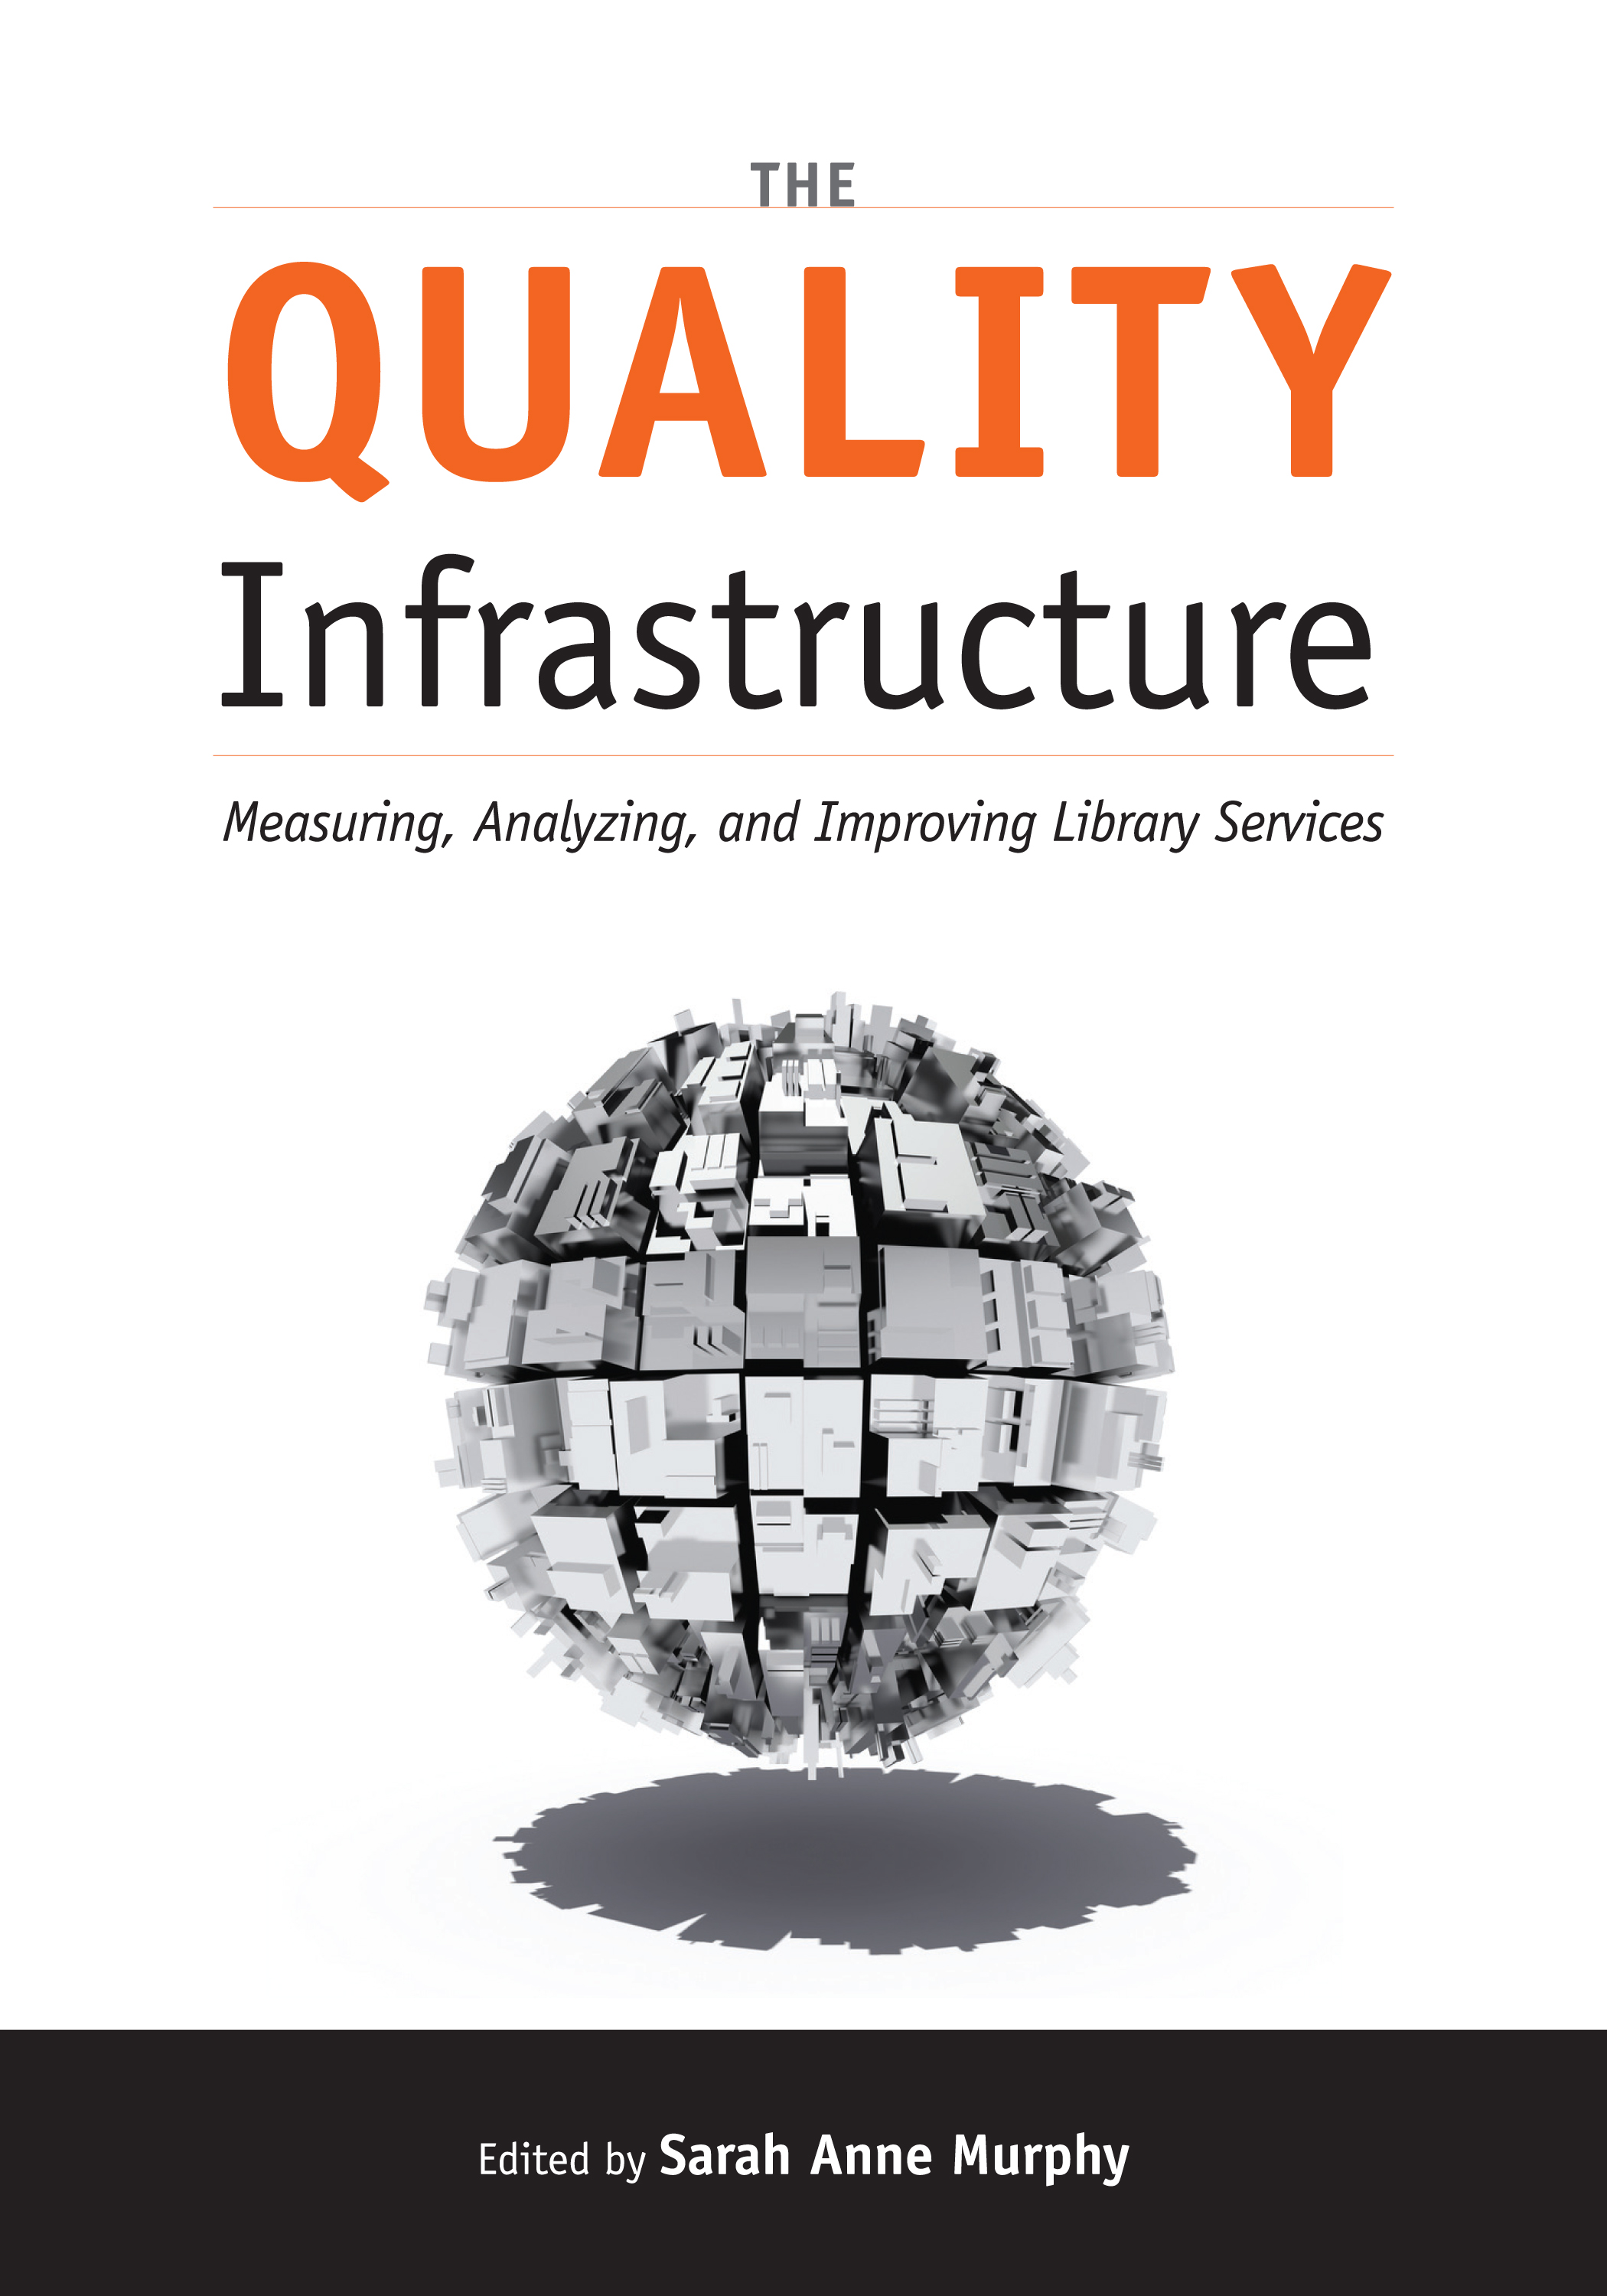 Measuring services quality